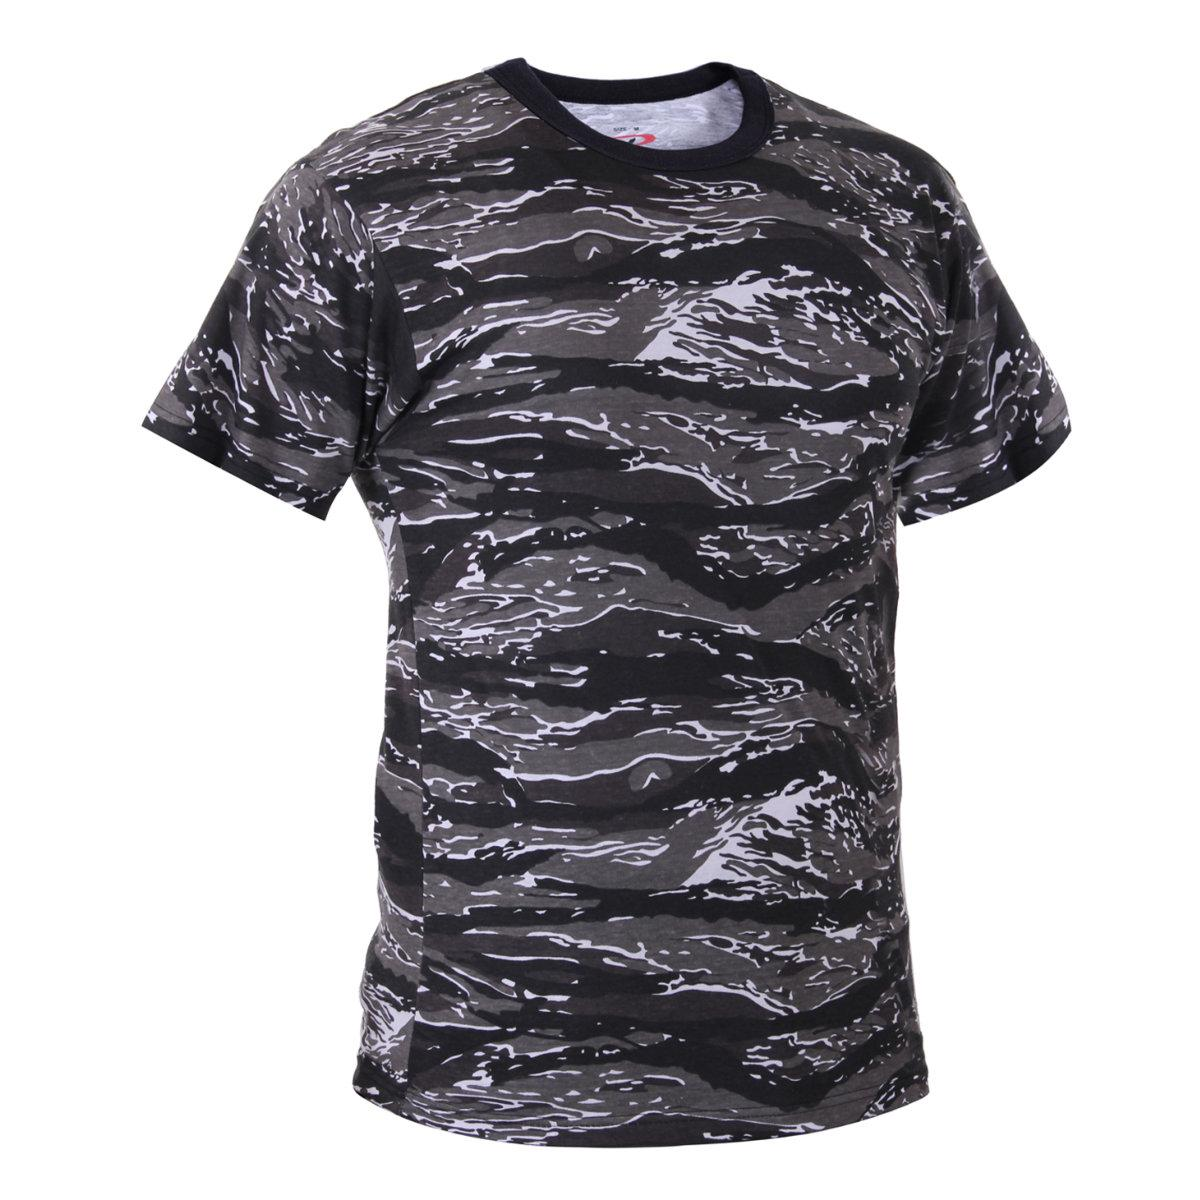 Urban Tiger Stripe Camo Camouflage T-shirt